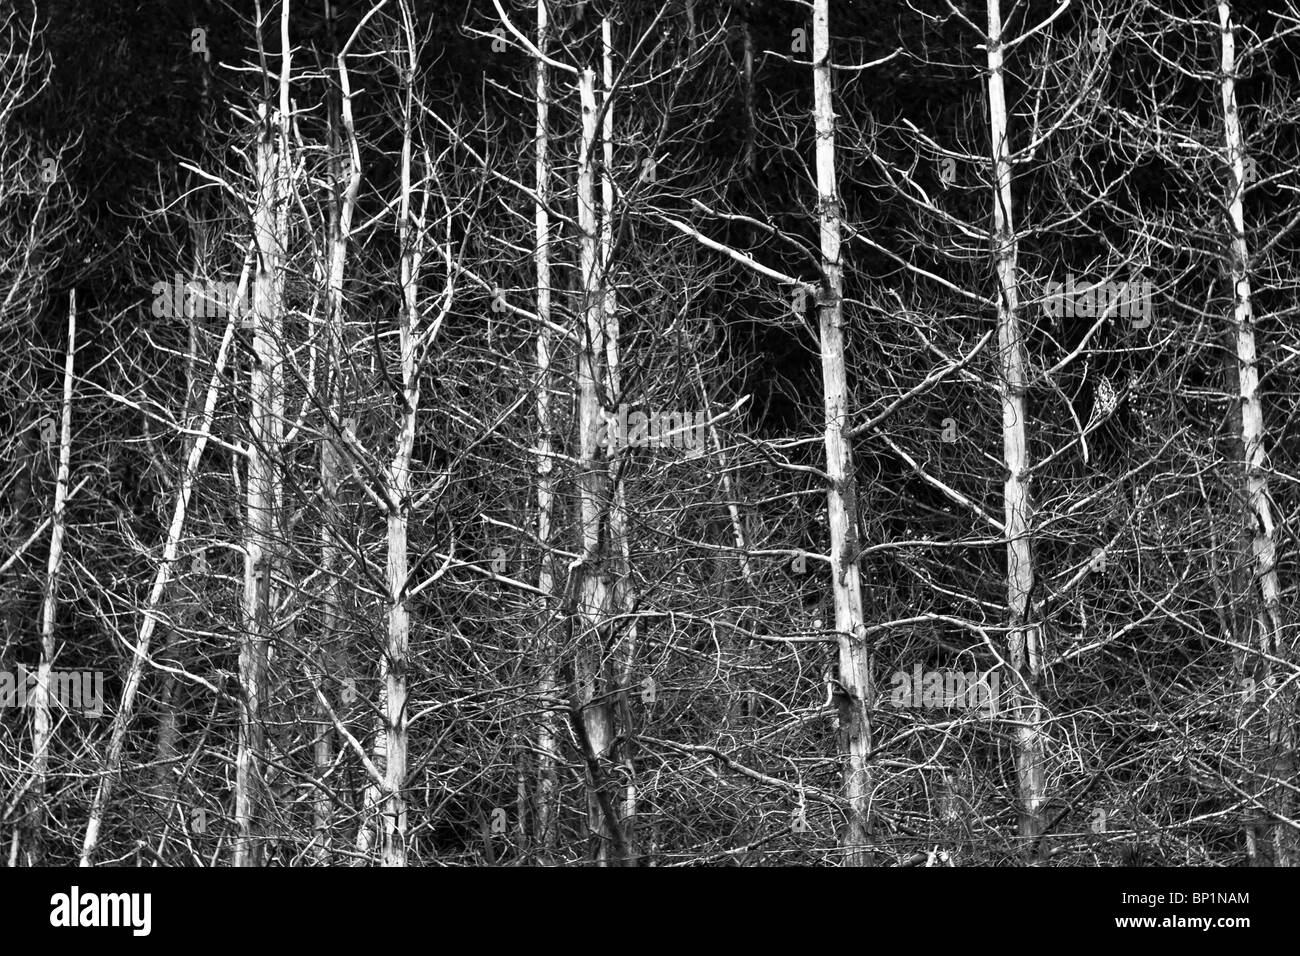 Monochromatic image of bleached dead pine trees against dark sky. - Stock Image